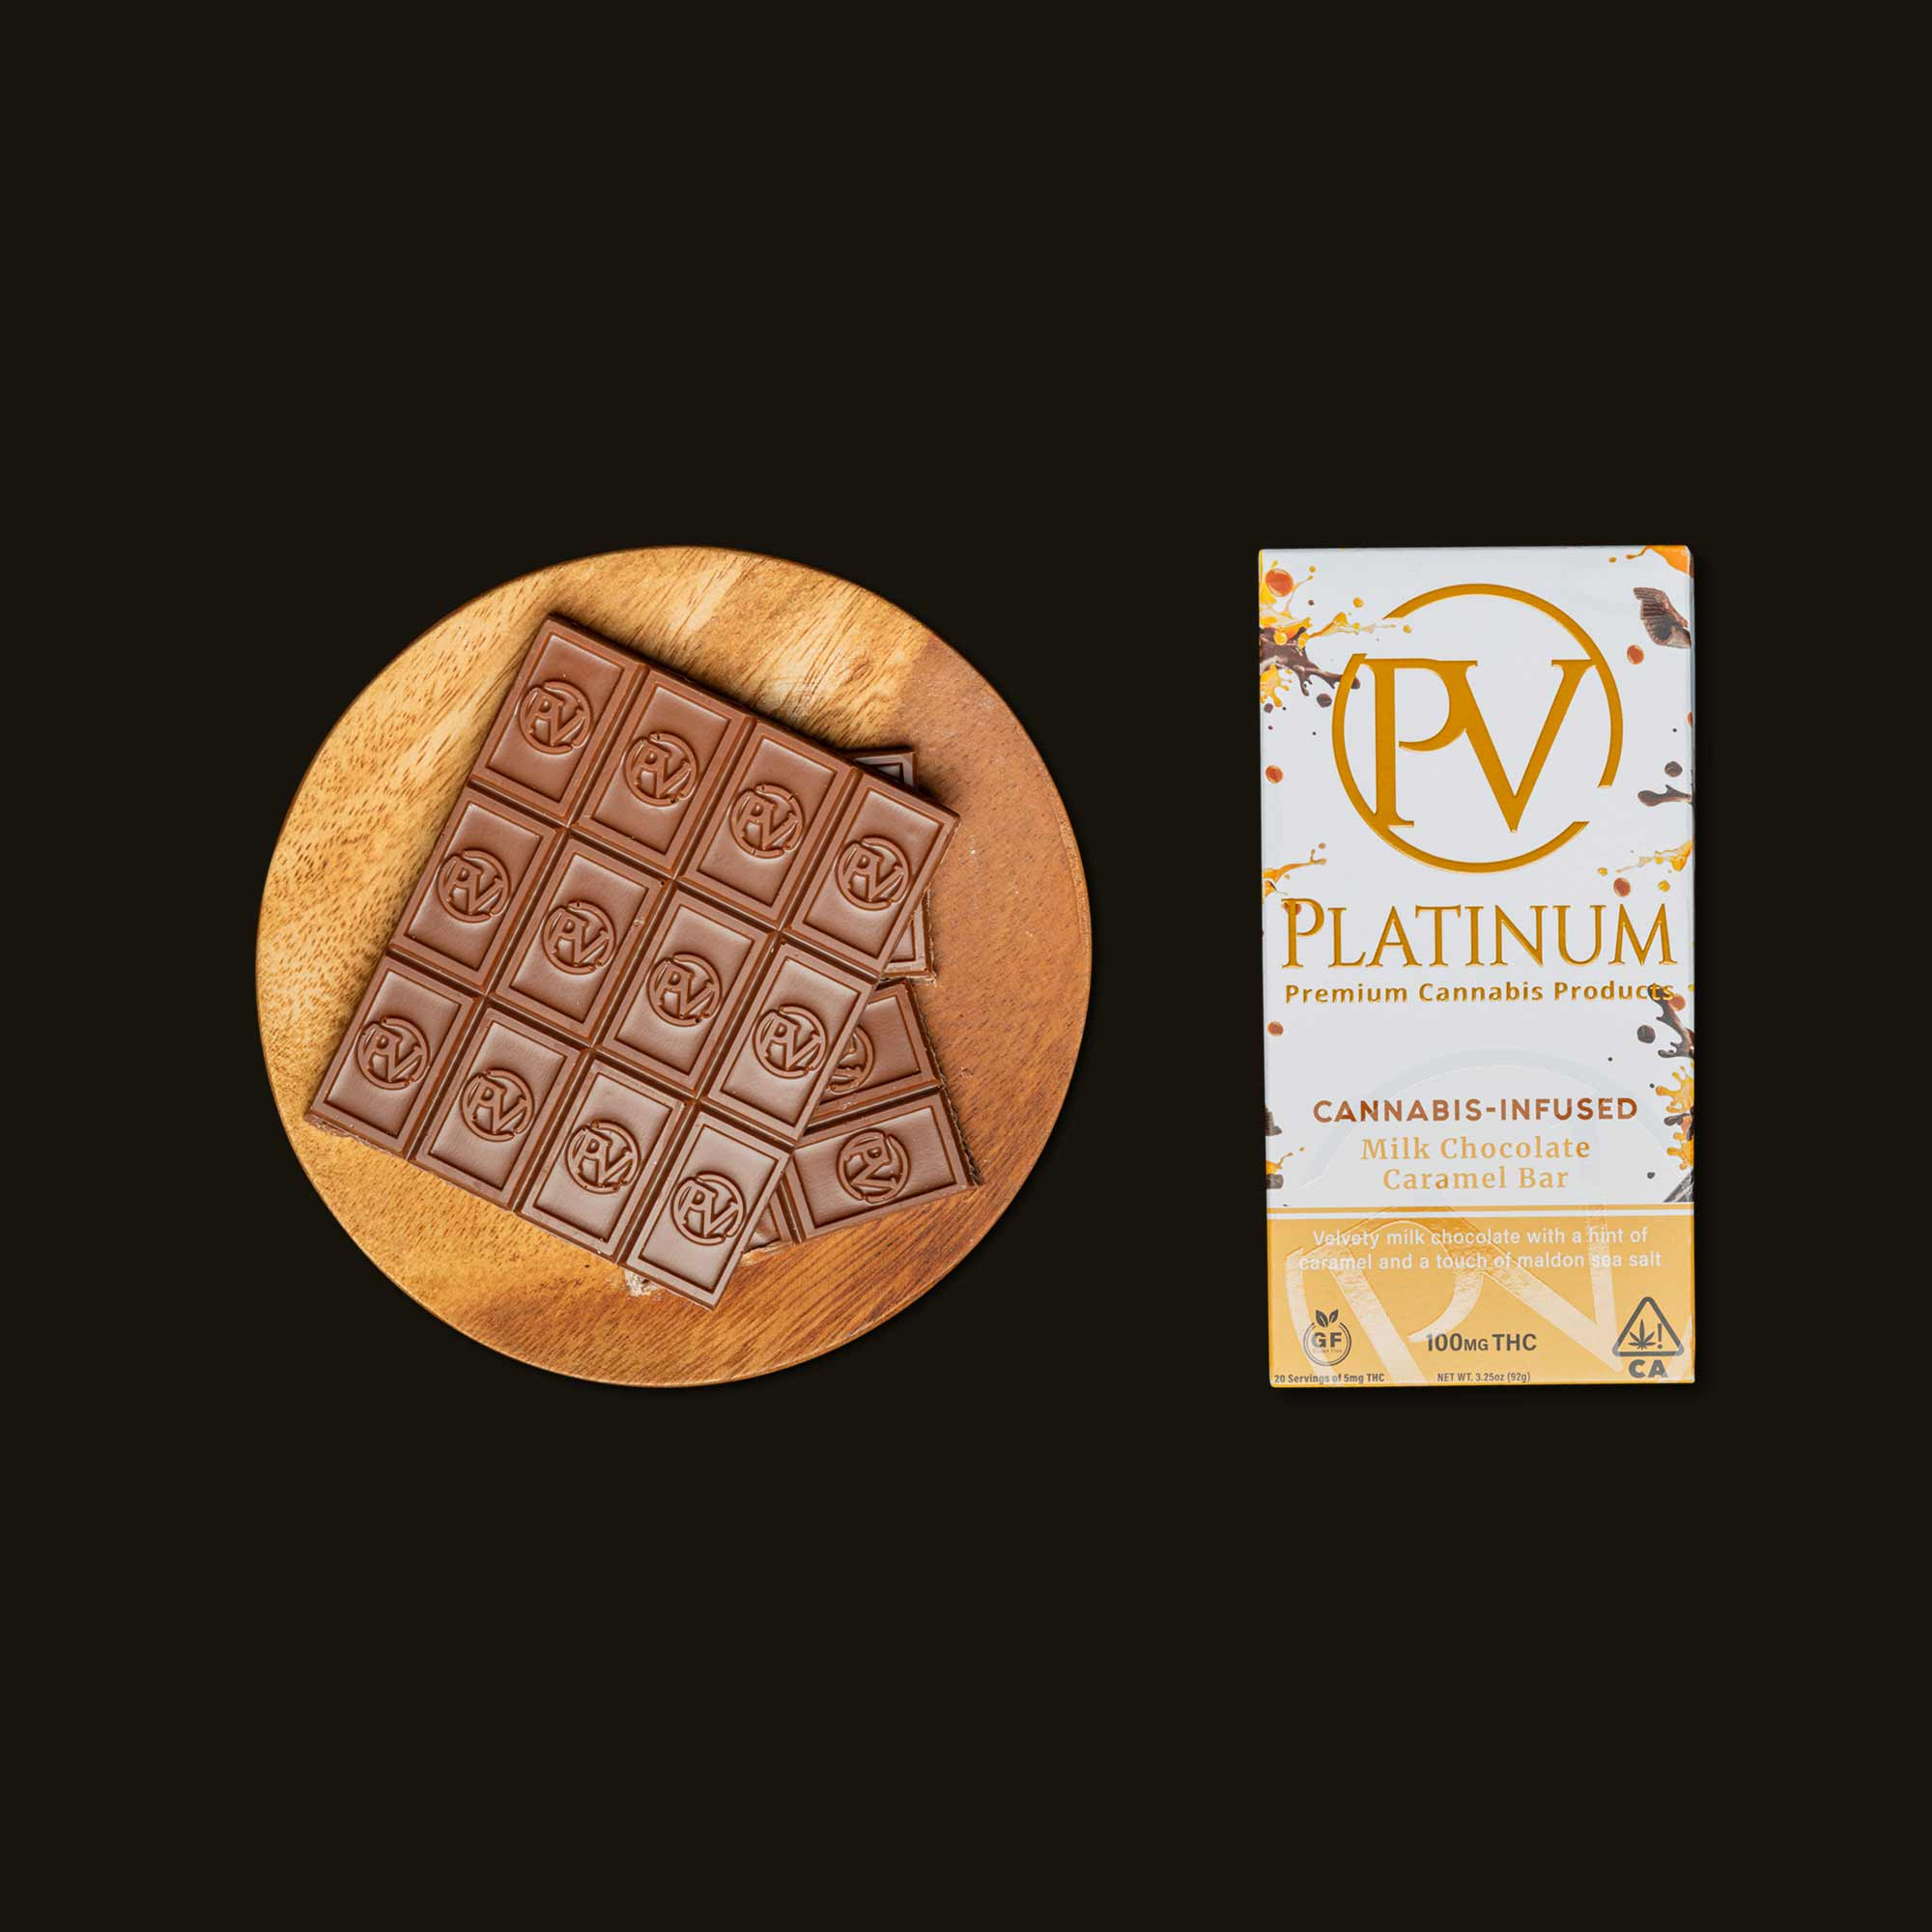 Platinum Milk Chocolate Caramel Bar